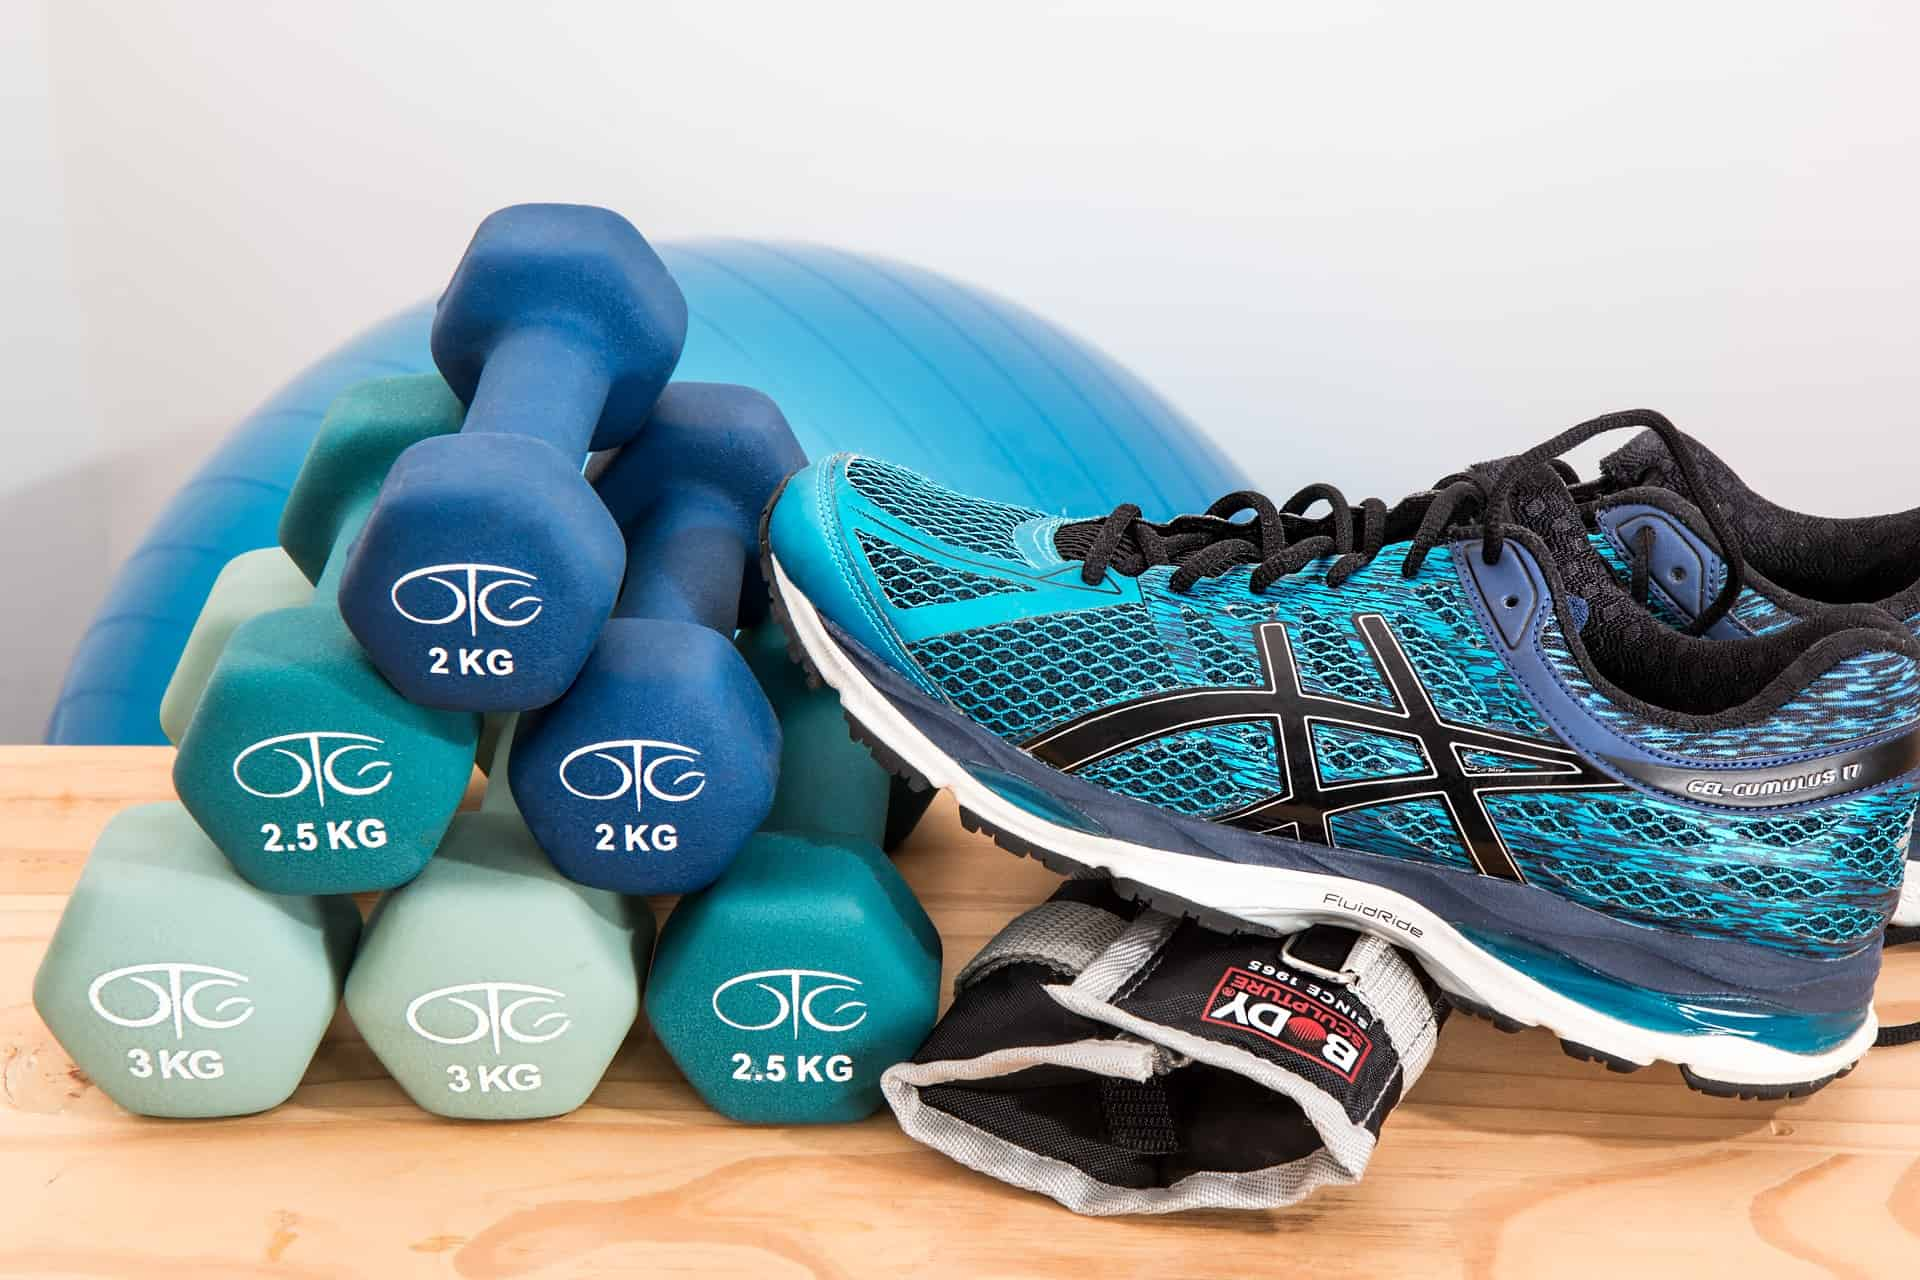 A picture of weights and running shoes